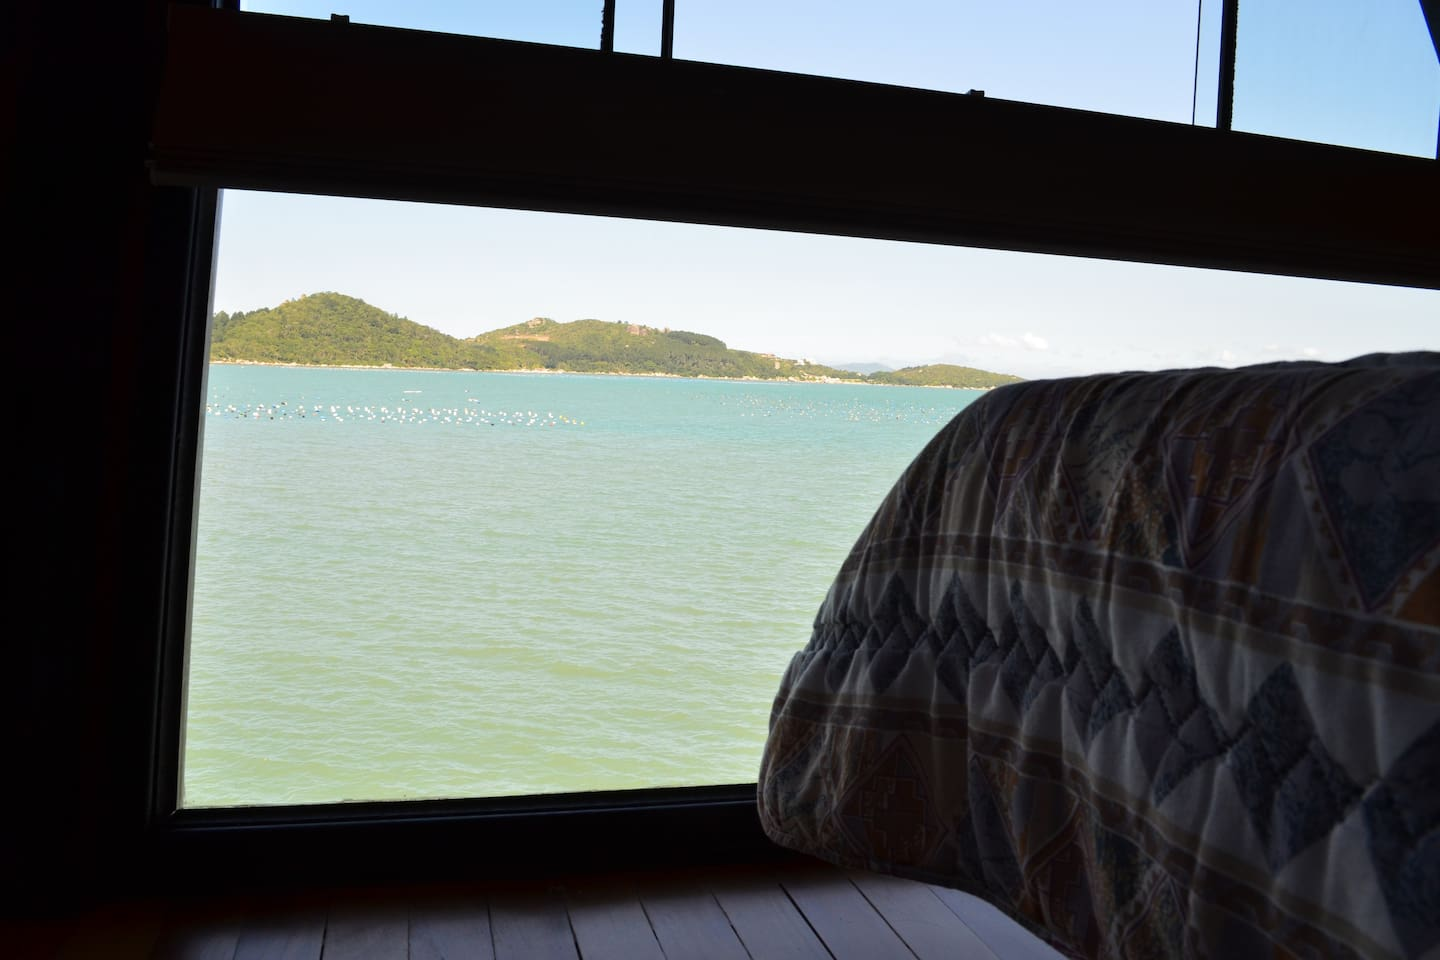 View from one of the bedrooms of the beach house